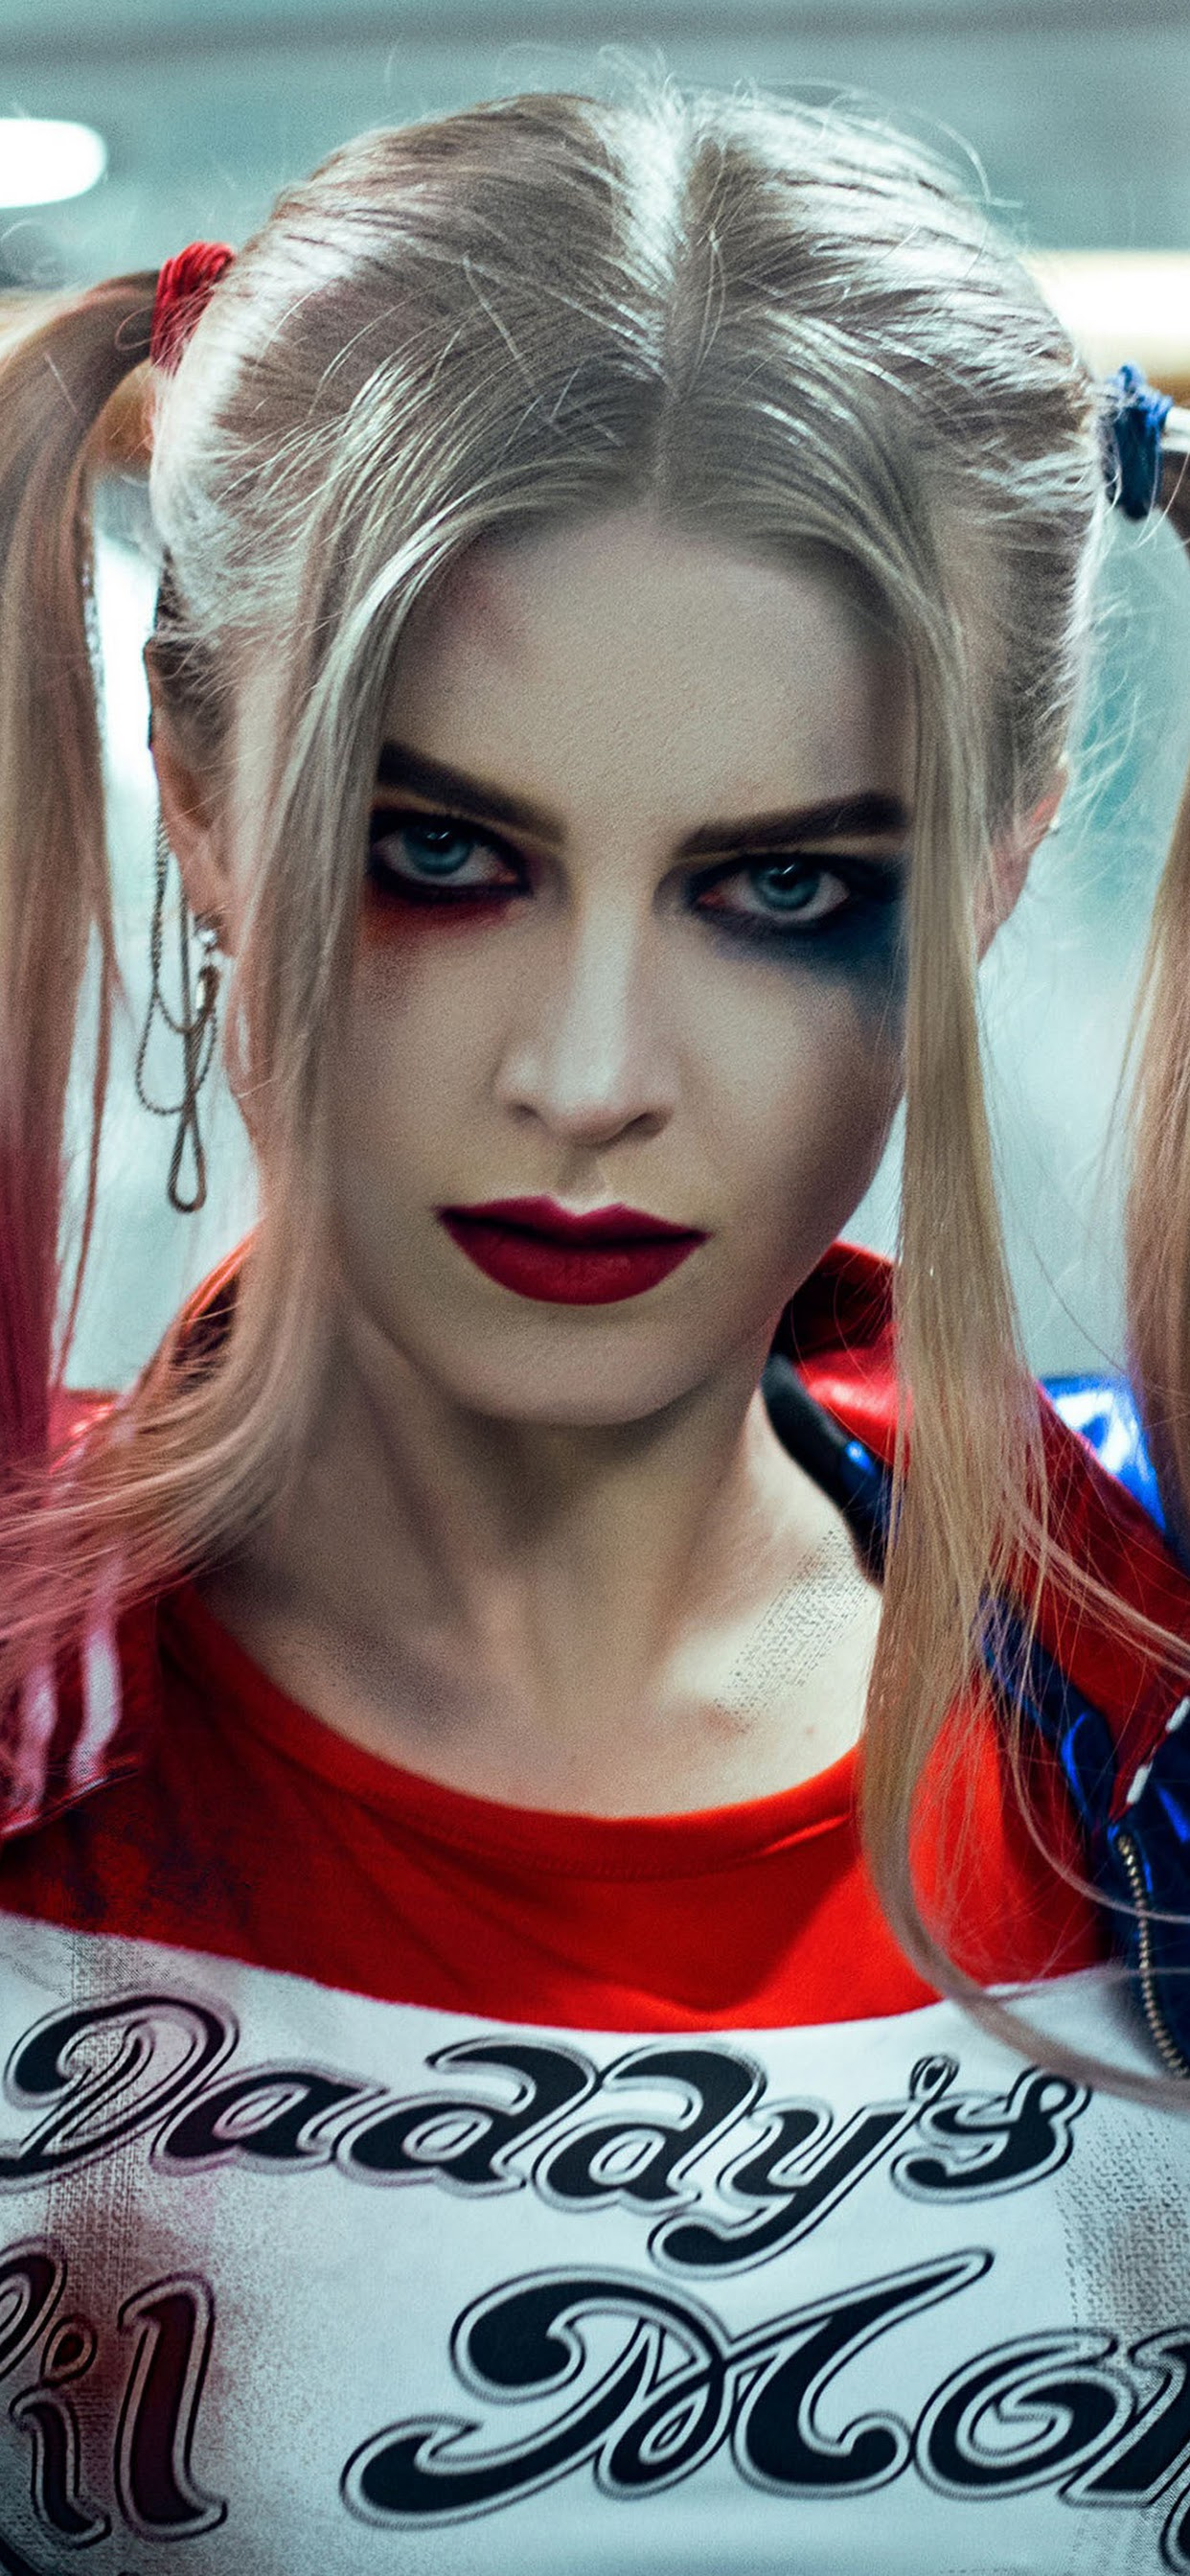 Harley Quinn Cosplay 4k Harley Quinn Wallpaper Iphone 1242x2688 Download Hd Wallpaper Wallpapertip